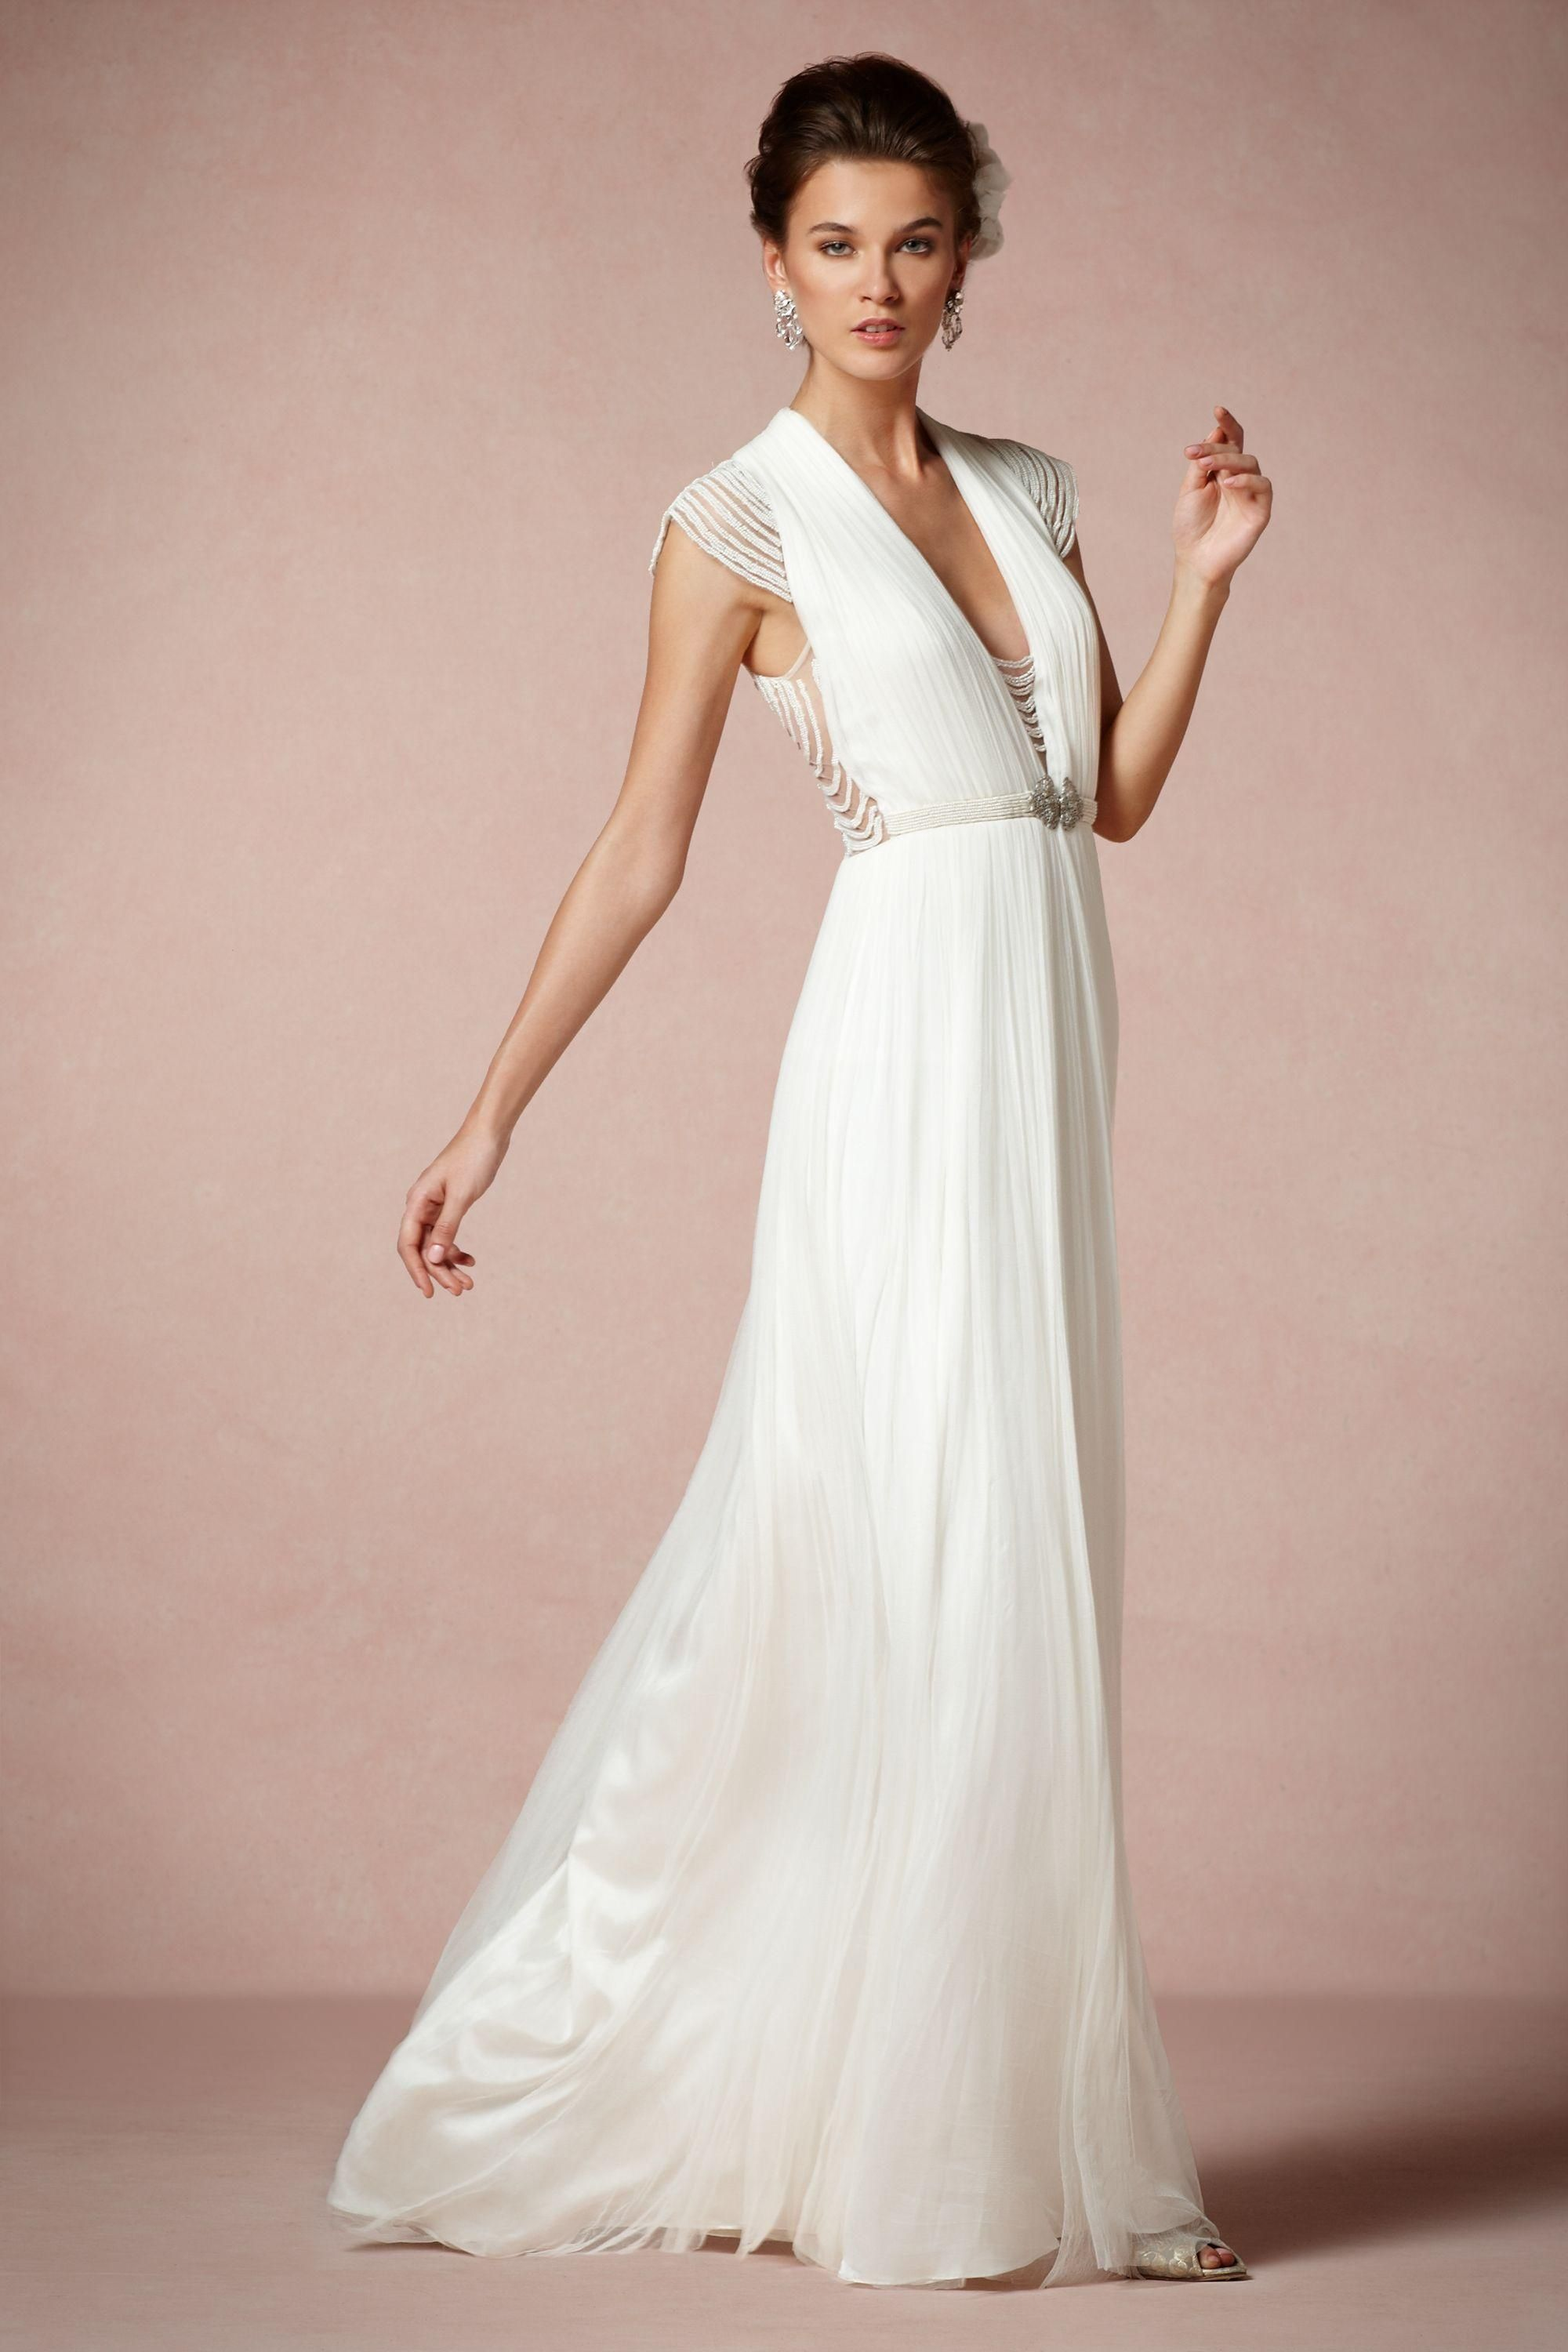 bhldn.com | Desire to Wear | Pinterest | Novios, Vestiditos y ...